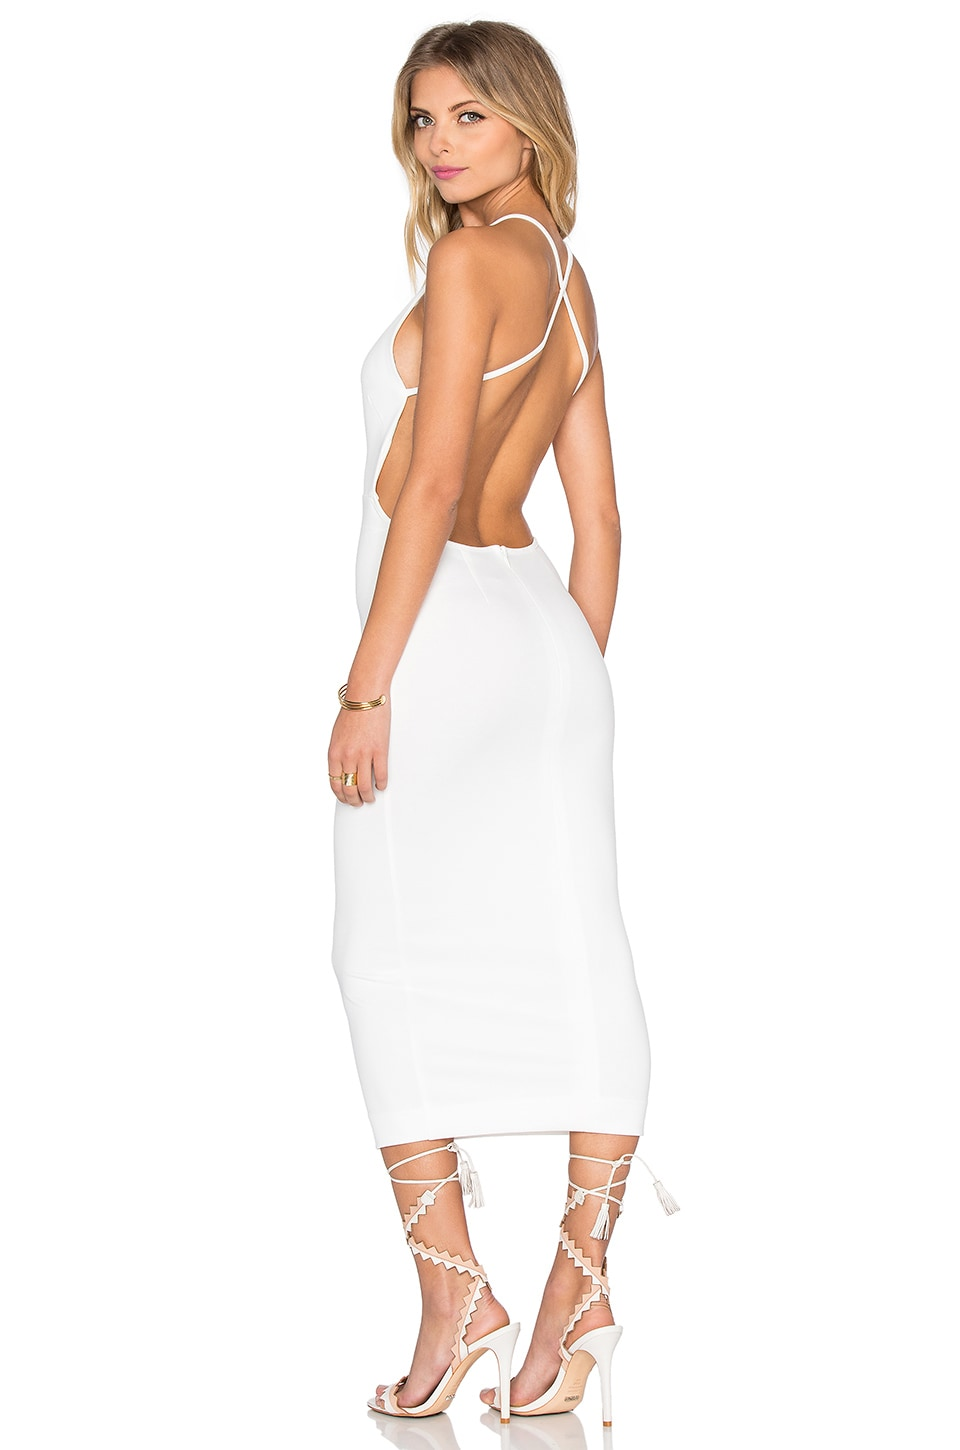 Maurie & Eve Kahlo Dress in White